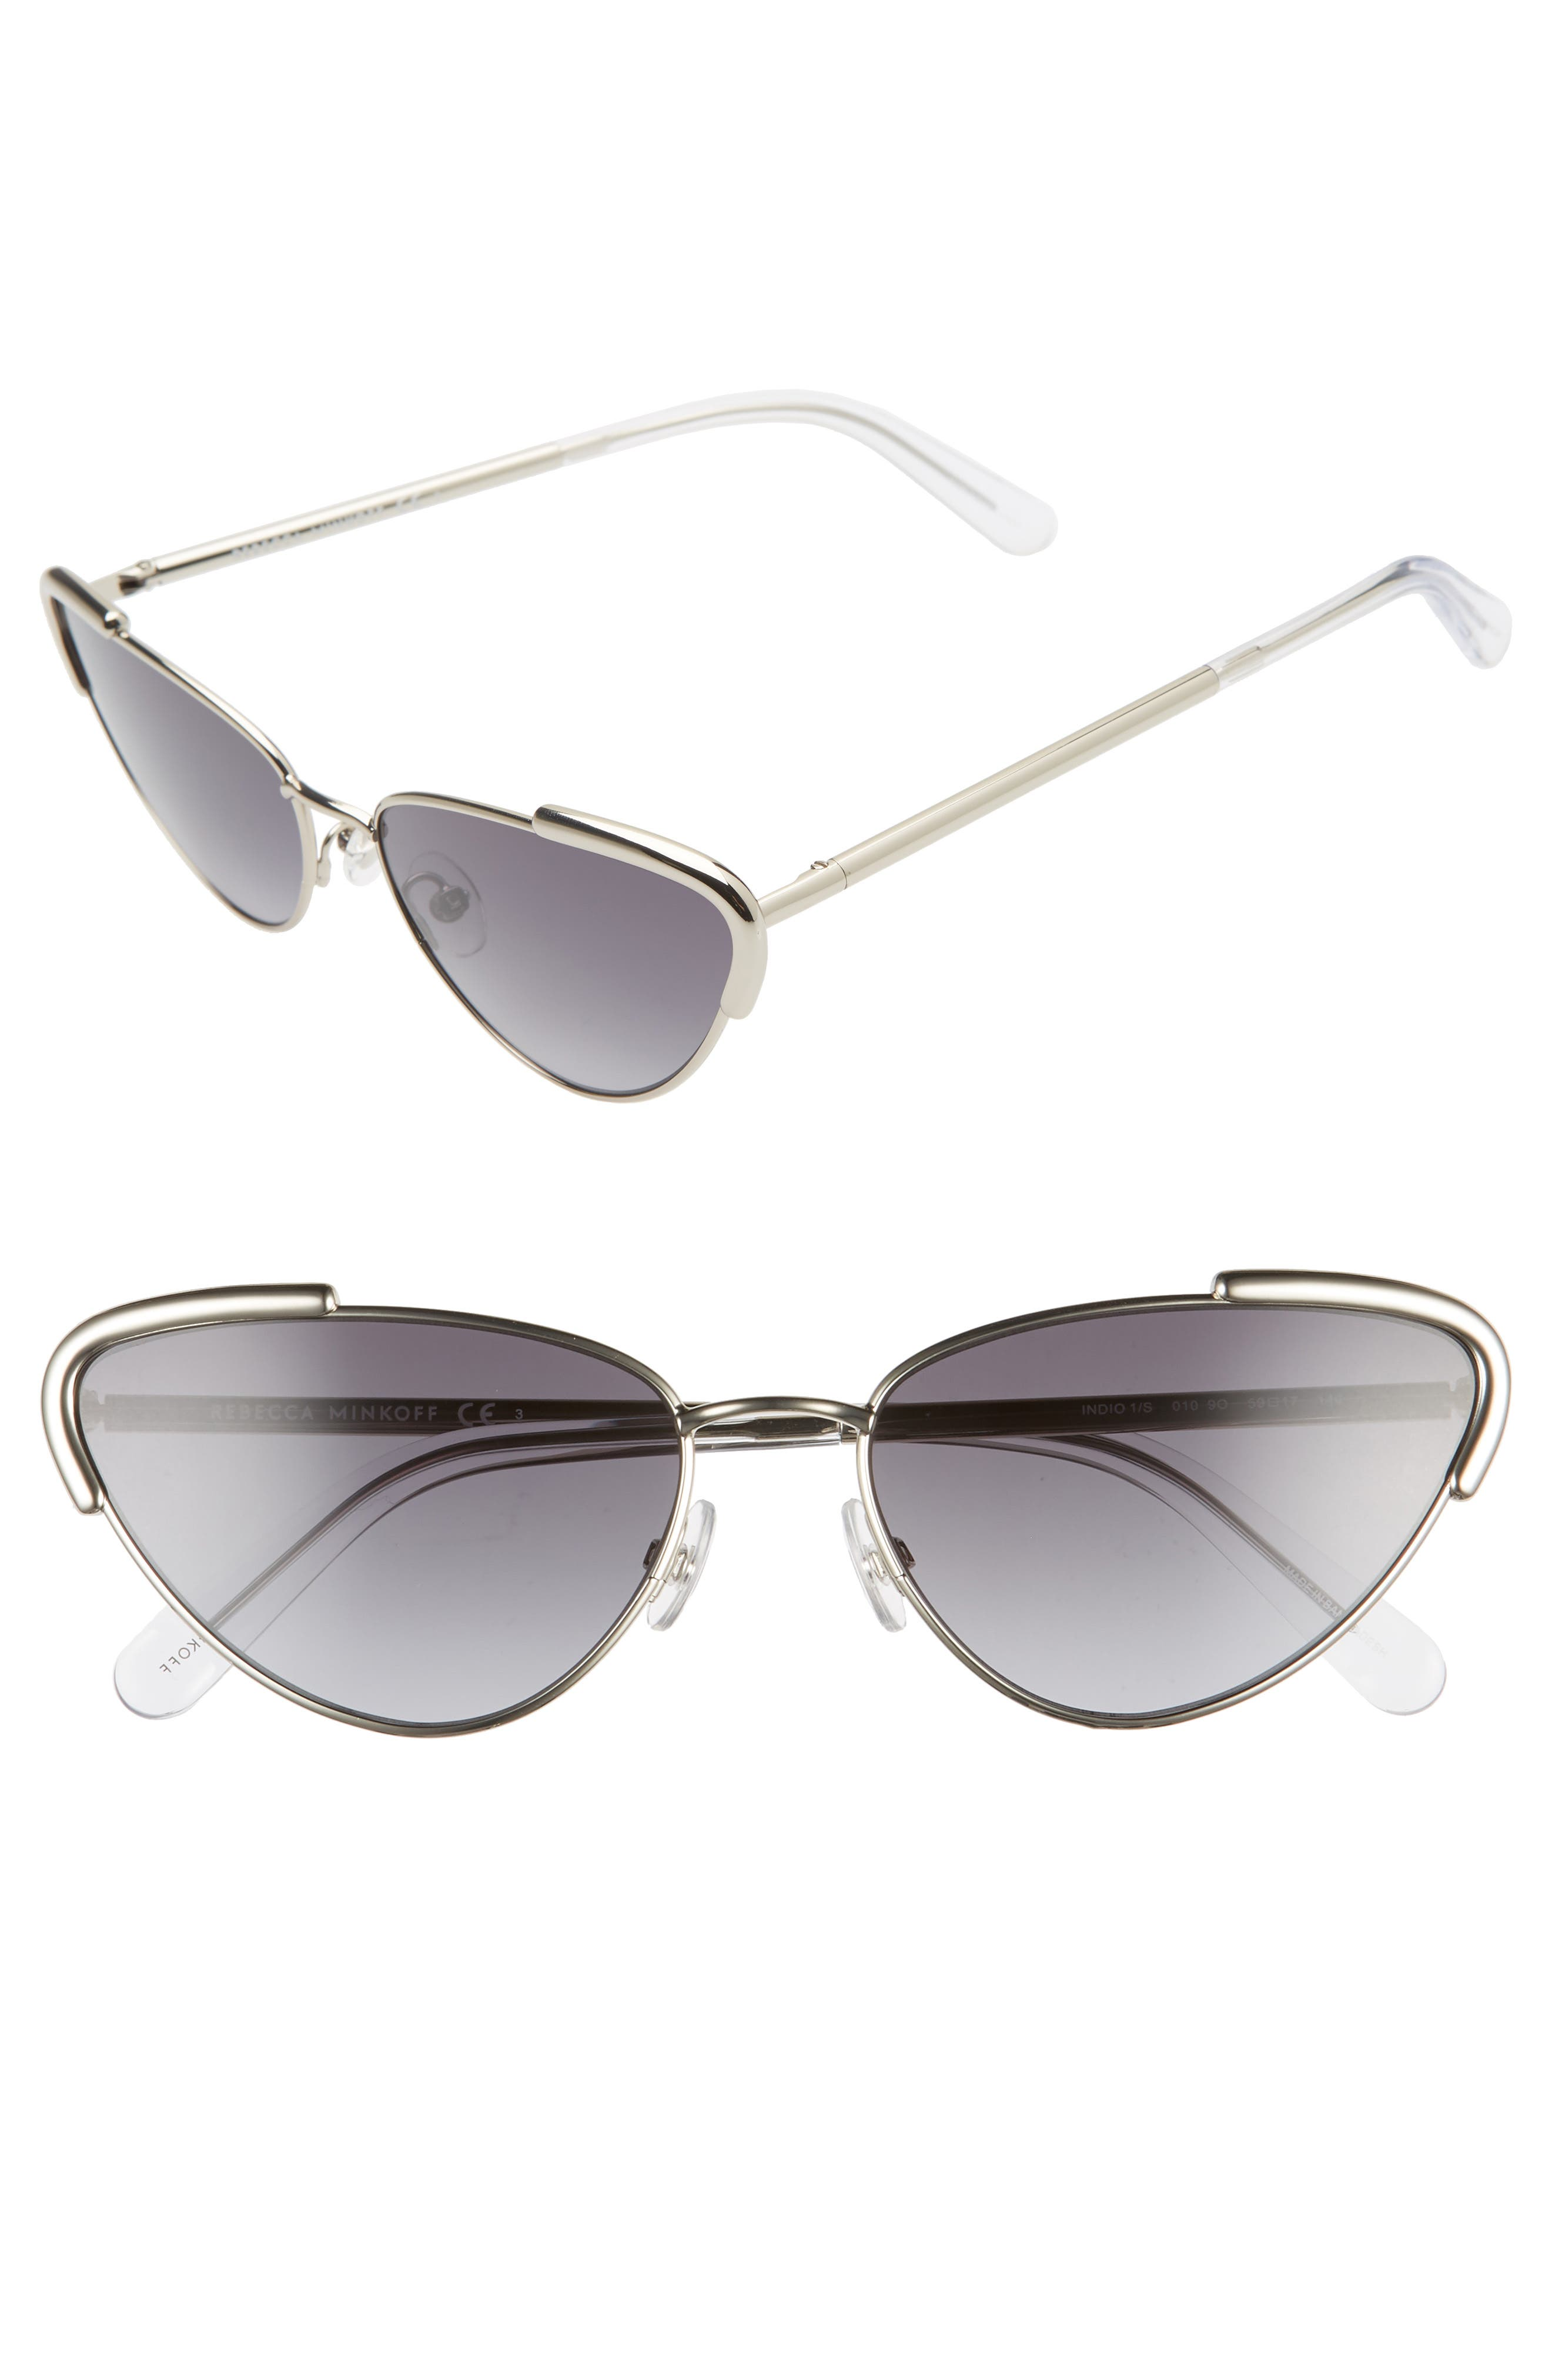 Tubular accents at the tipped-up corners bring contemporary appeal to chic cat-eye sunnies that offer full sun protection. Style Name: Rebecca Minkoff Indio1 59mm Cat Eye Sunglasses. Style Number: 5985308. Available in stores.